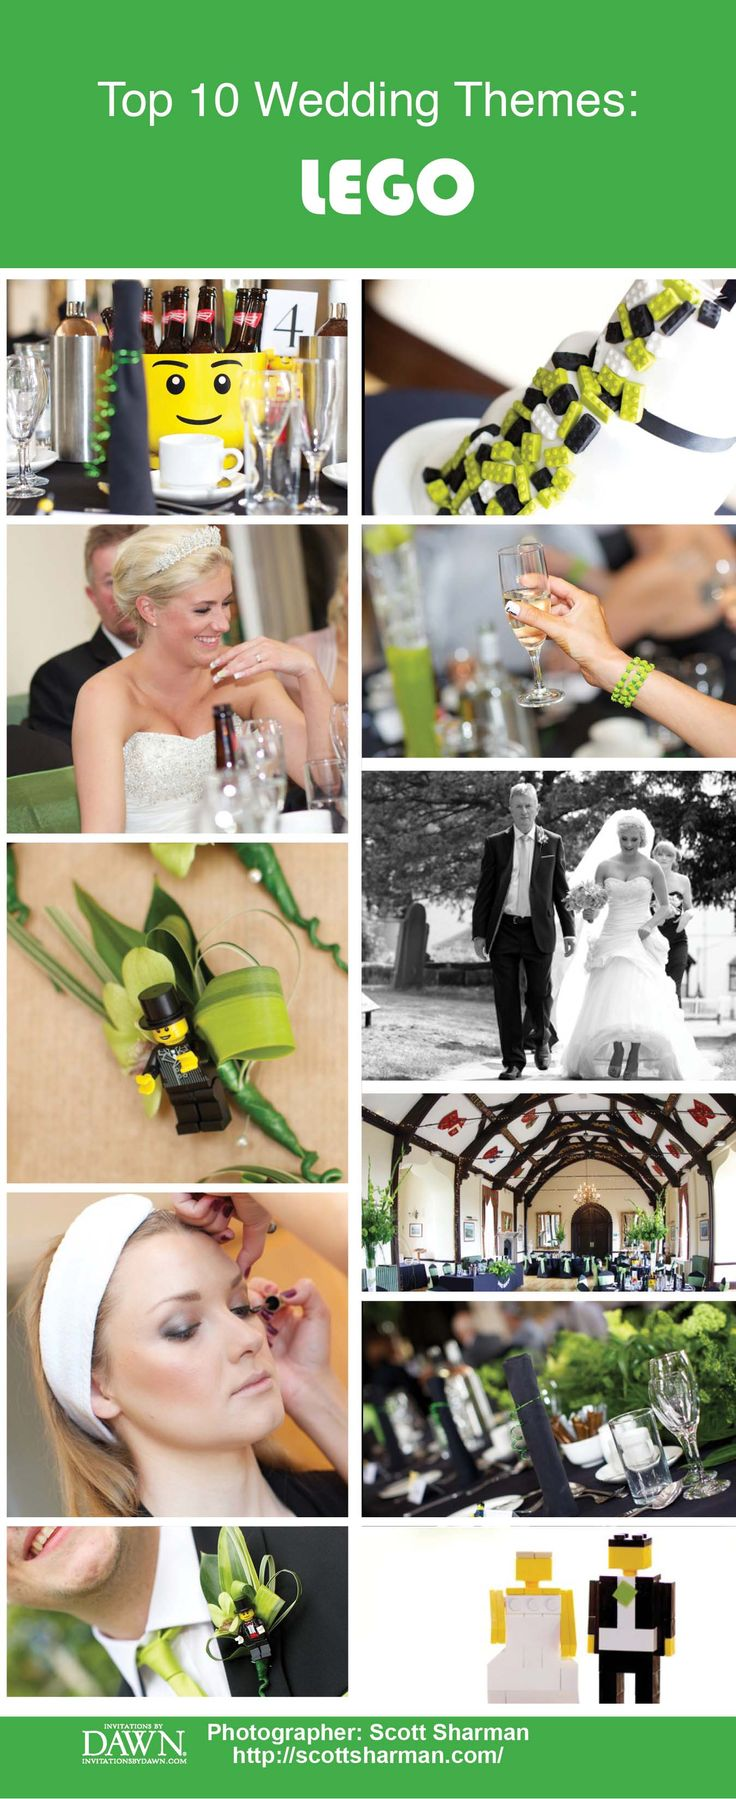 Top Unique Wedding Themes: LEGO Inspired